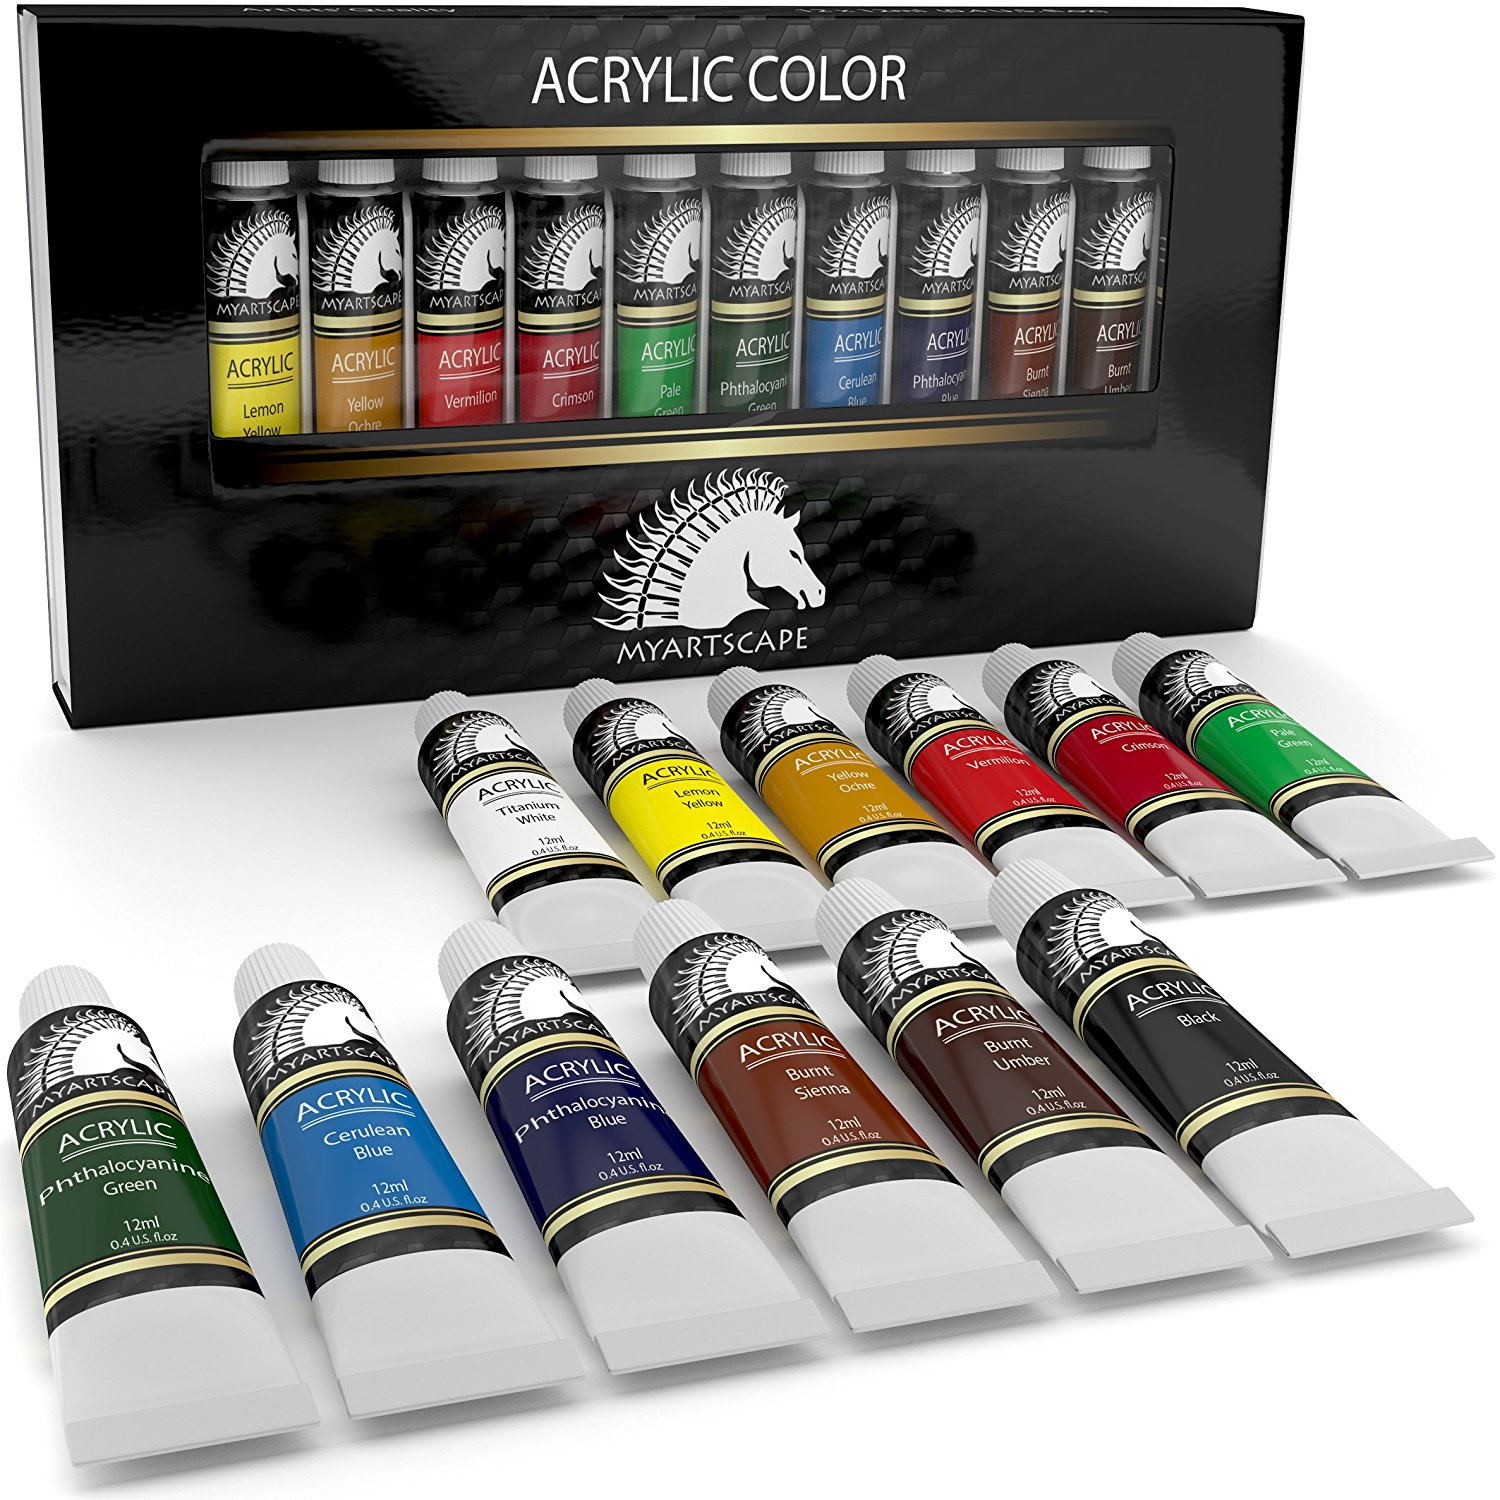 Best Brand Of Acrylic Paint For Nail Art